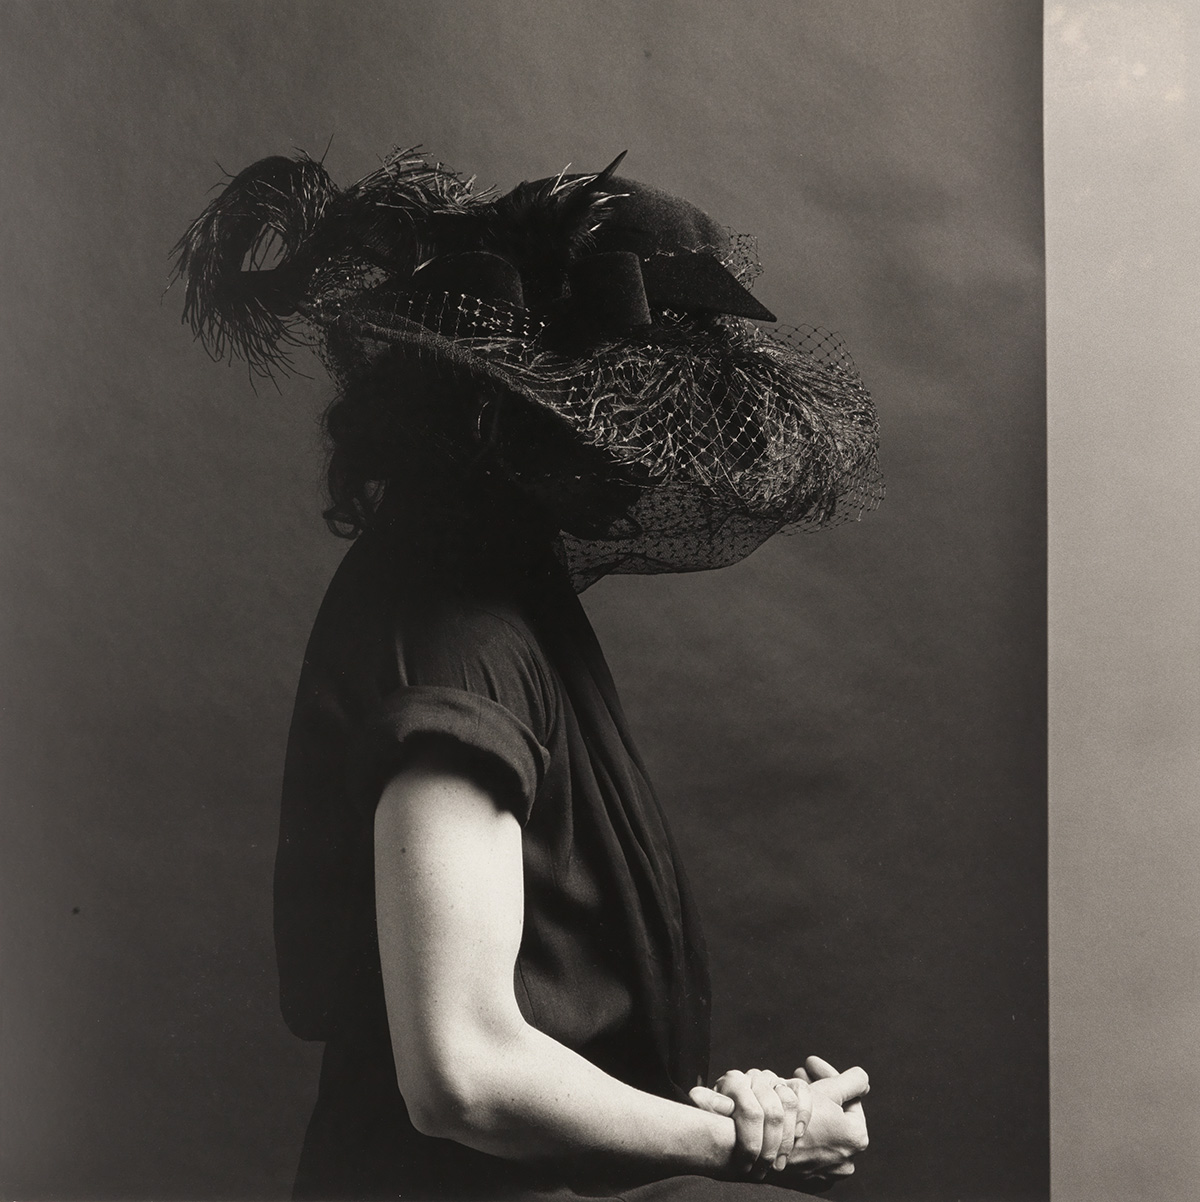 ROBERT-MAPPLETHORPE-(1946-1989)-Lisa-Lyon